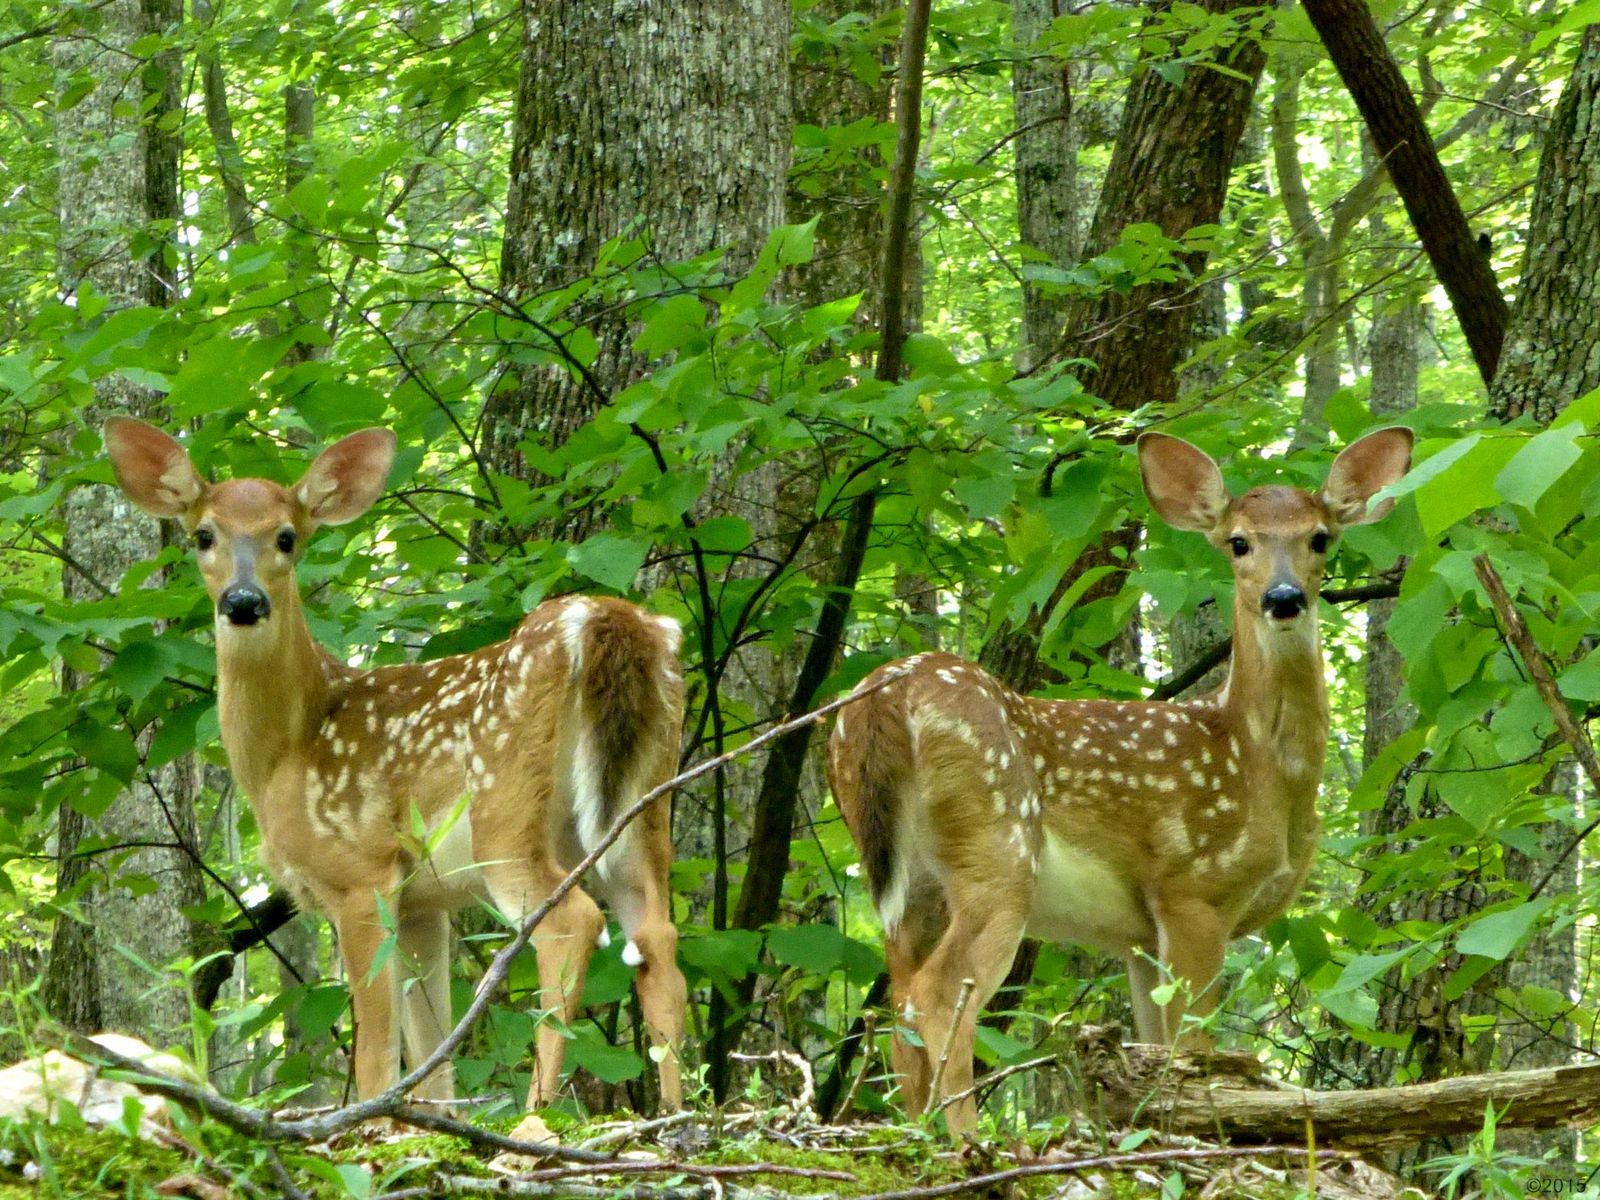 July 25, 2015 - twins fawns in Bent Tree